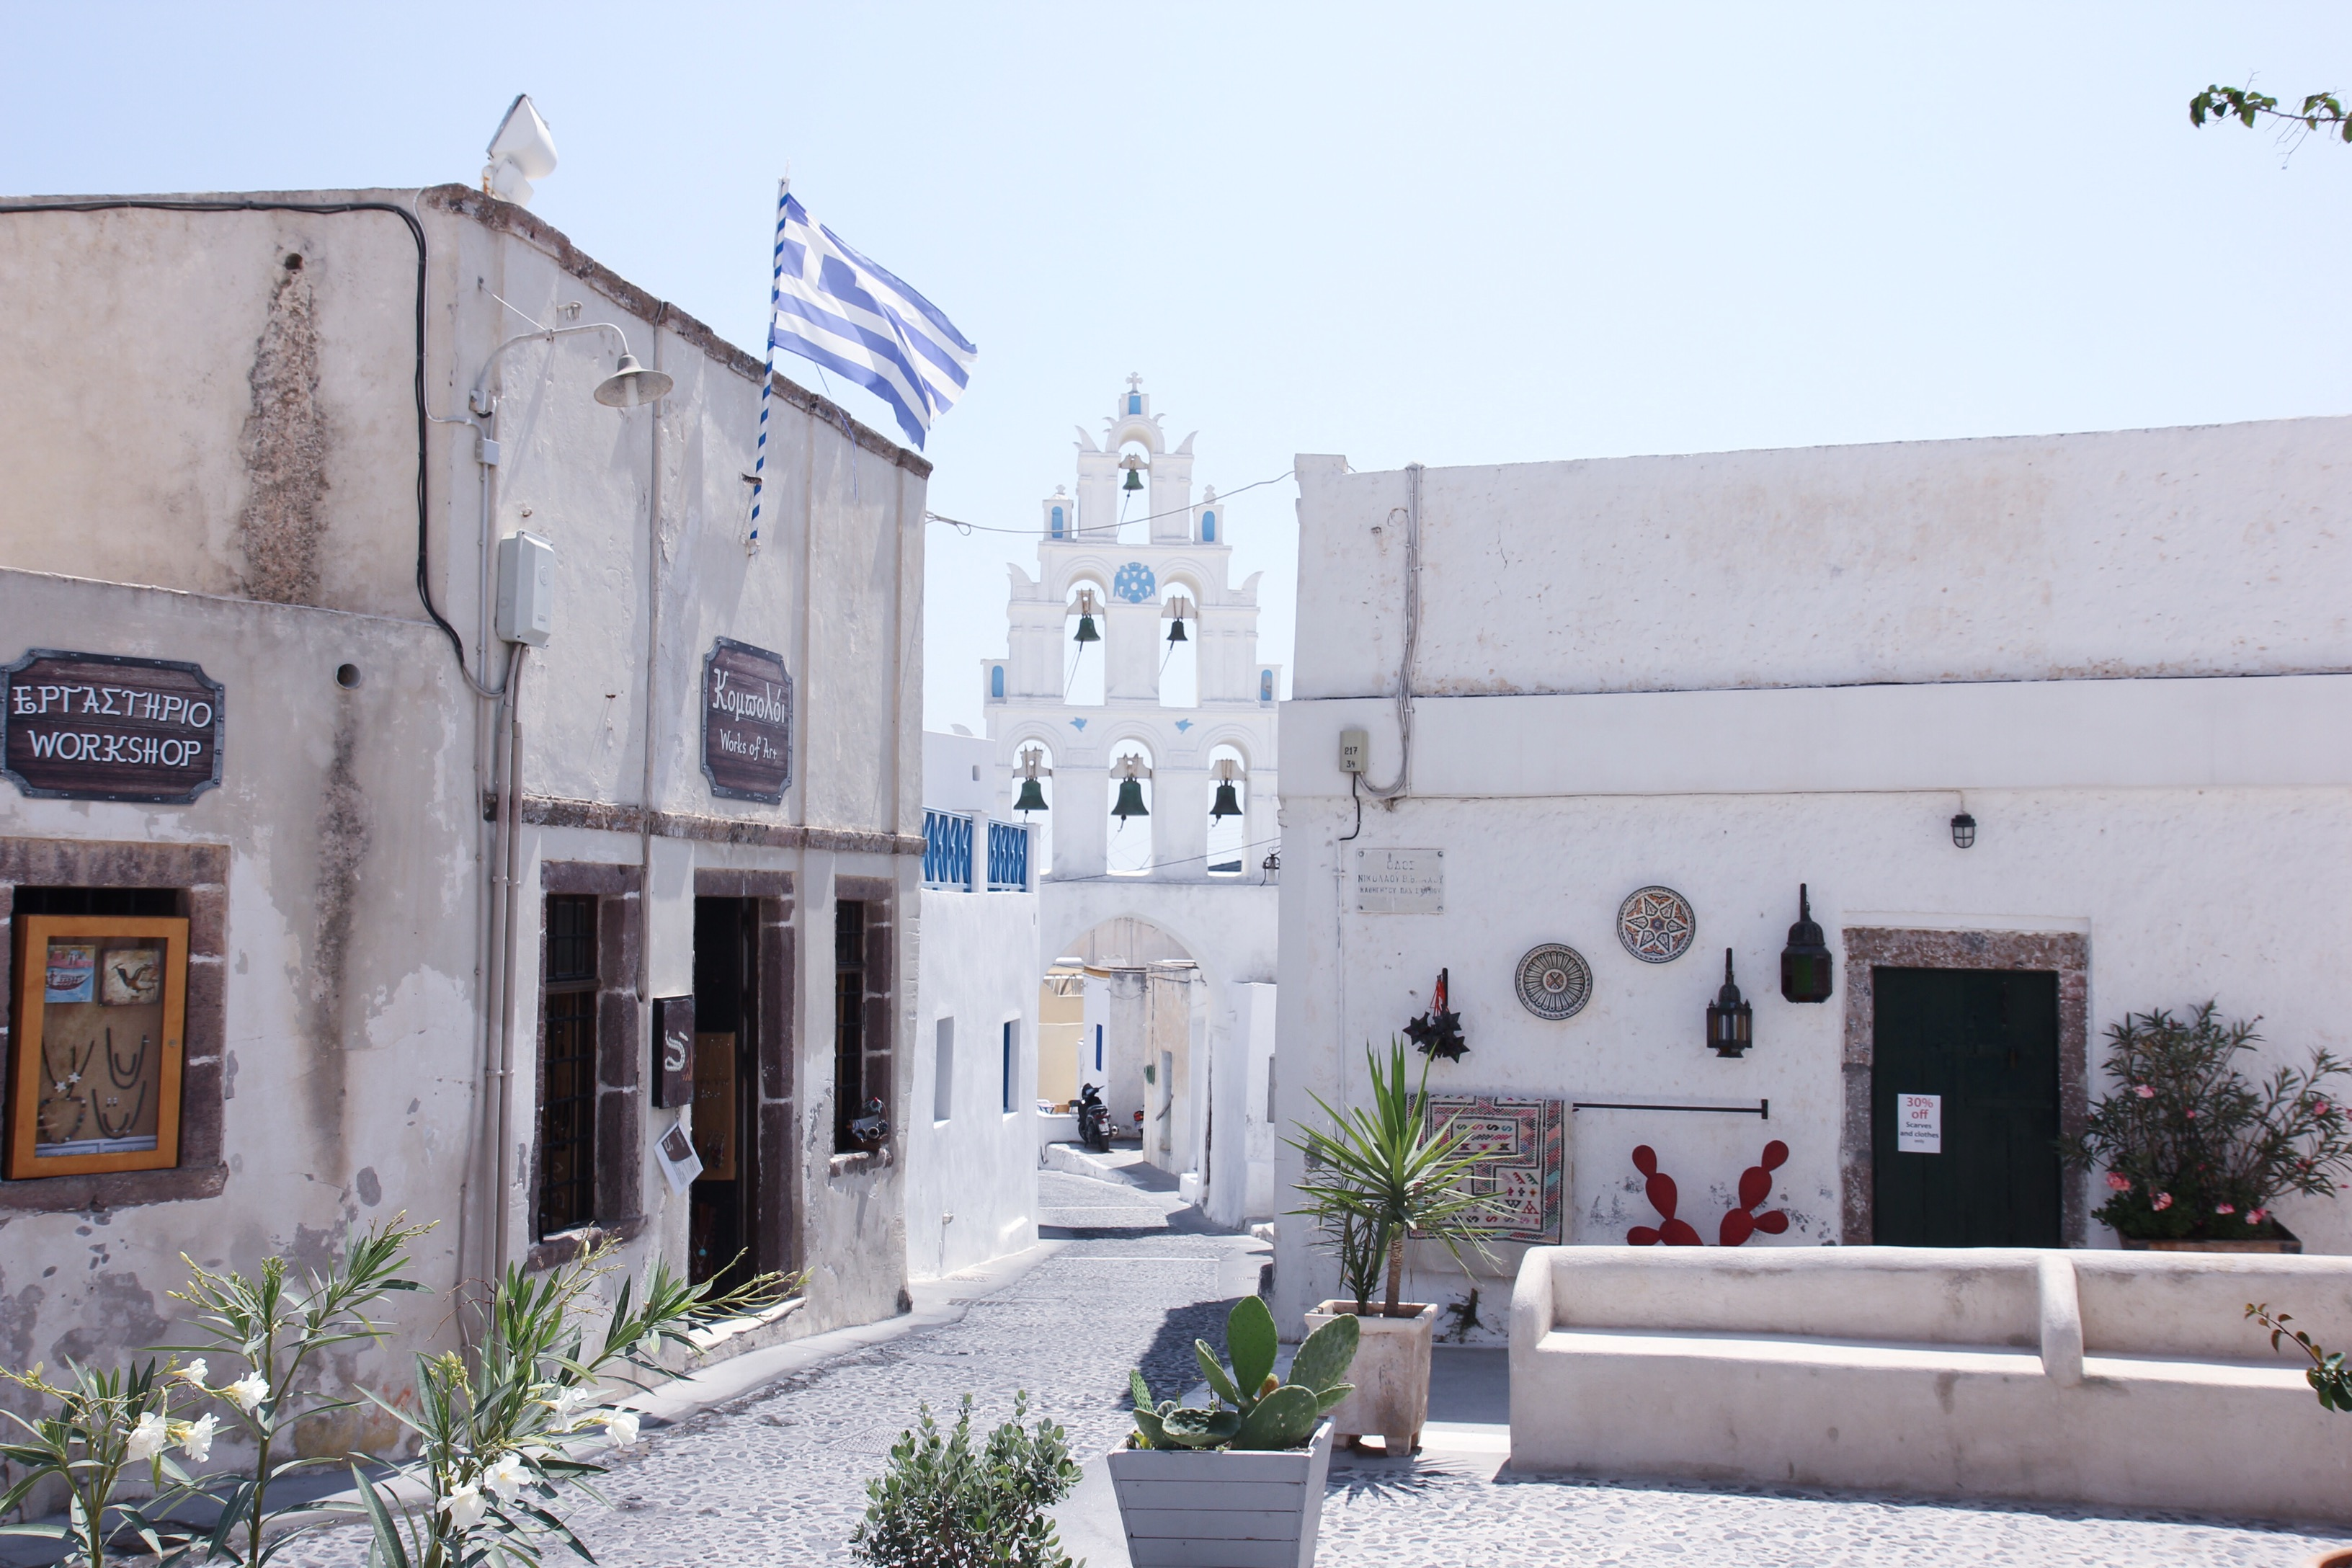 Must-sees and must-dos in Santorini